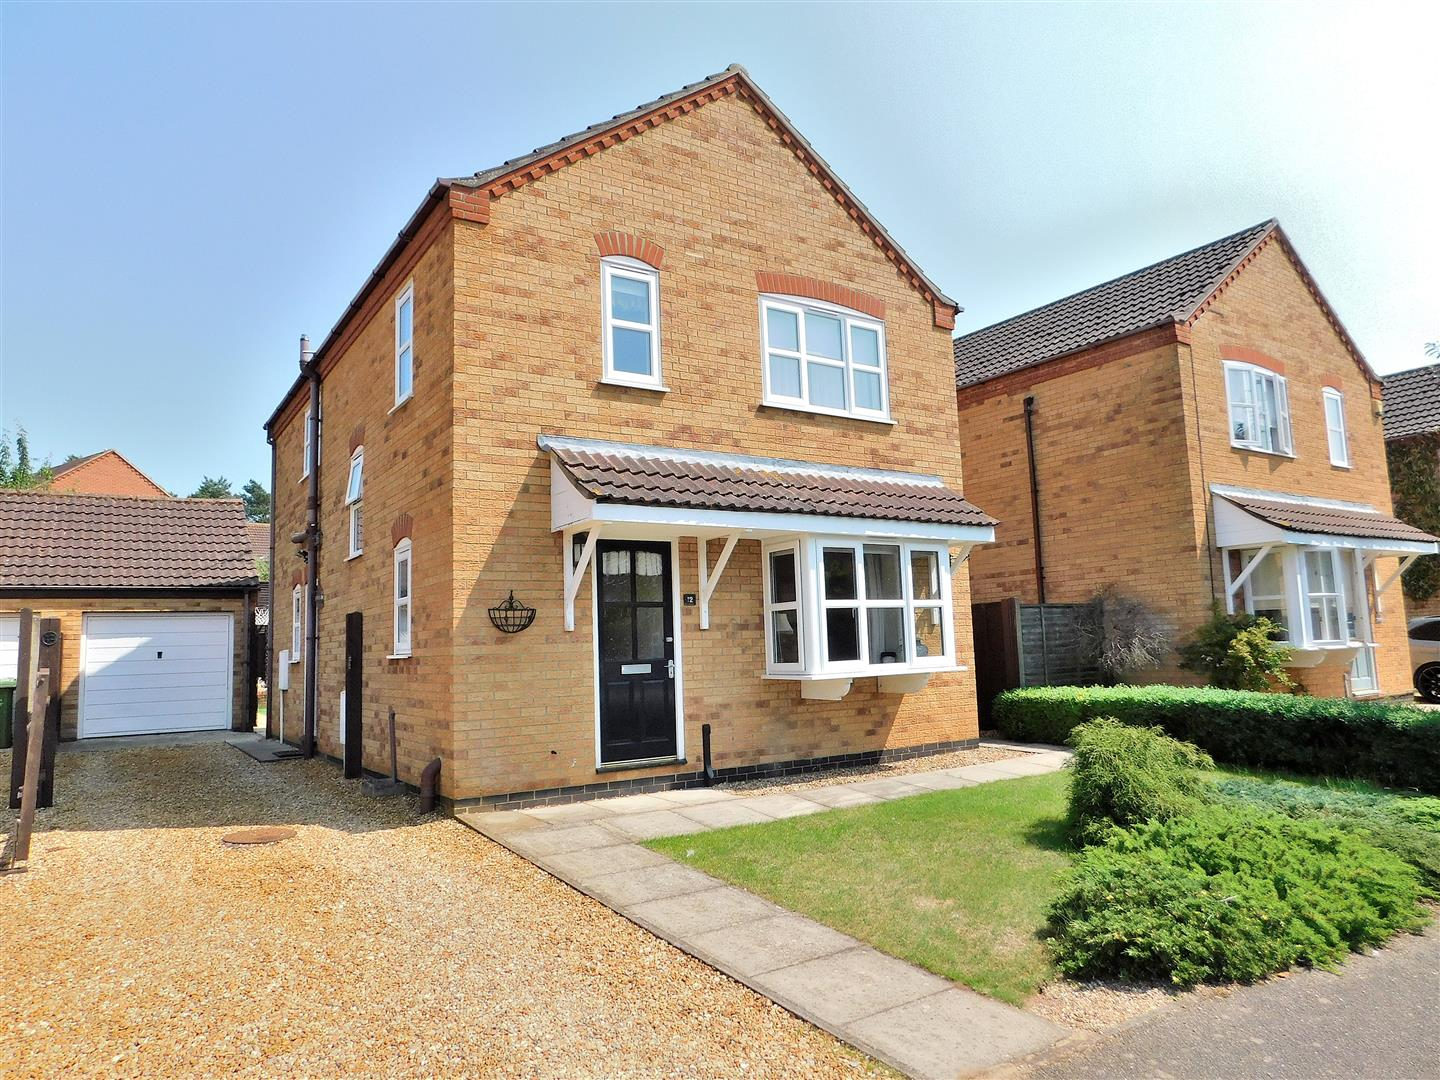 4 bed detached house for sale in Kerrich Close, King's Lynn - Property Image 1